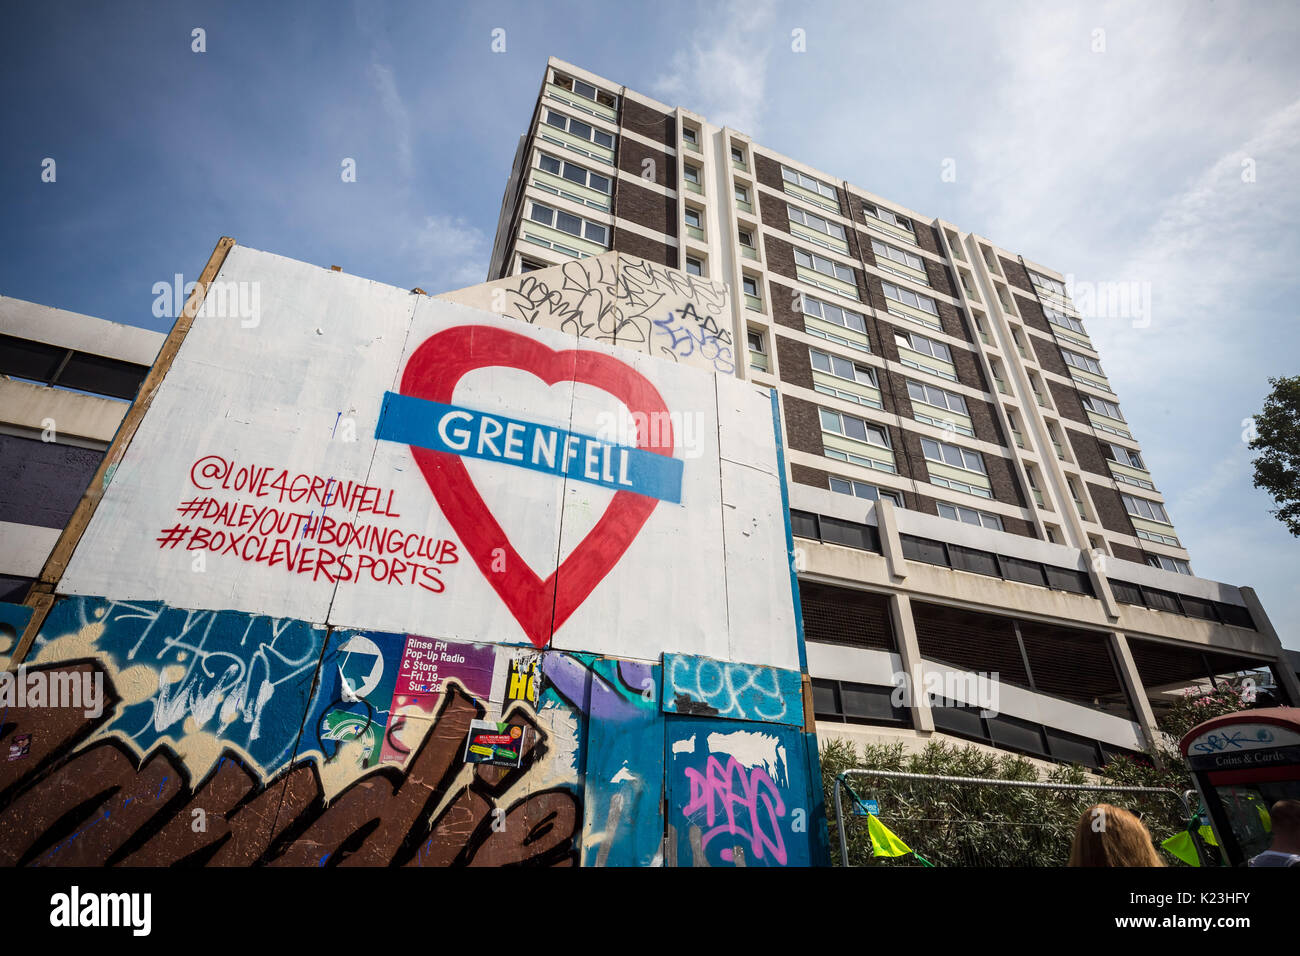 London, UK. 28th Aug, 2017. Grenfell Tower memorial sign seen during Notting Hill Carnival. Credit: Guy Corbishley/Alamy Live News - Stock Image